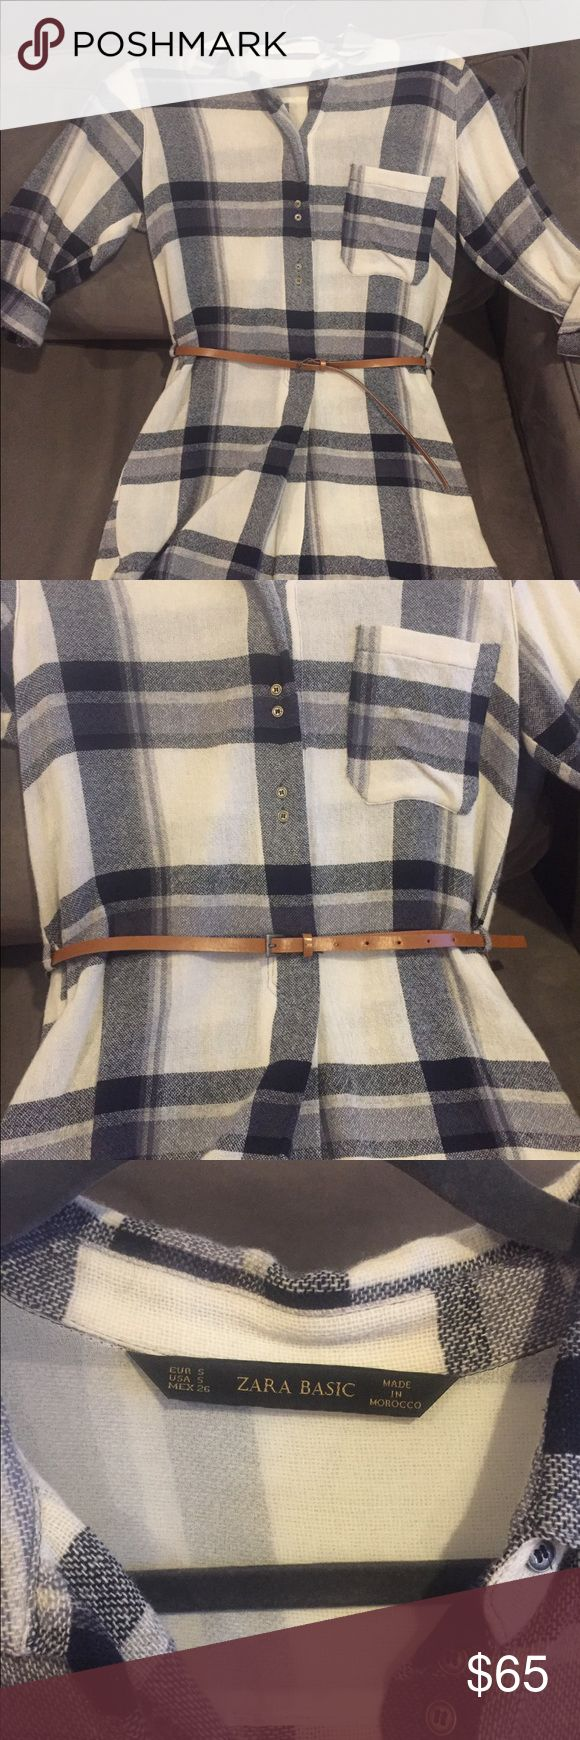 Zara Plaid Flannel Shirt Dress Sz Small Zara Plaid Flannel Shirt Dress Blue/ Cream color. Size Small, Belt loops and Brown Belt included. Excellent condition, worn 2x. Can be worn with belt on without for looser fit. Zara Dresses Long Sleeve